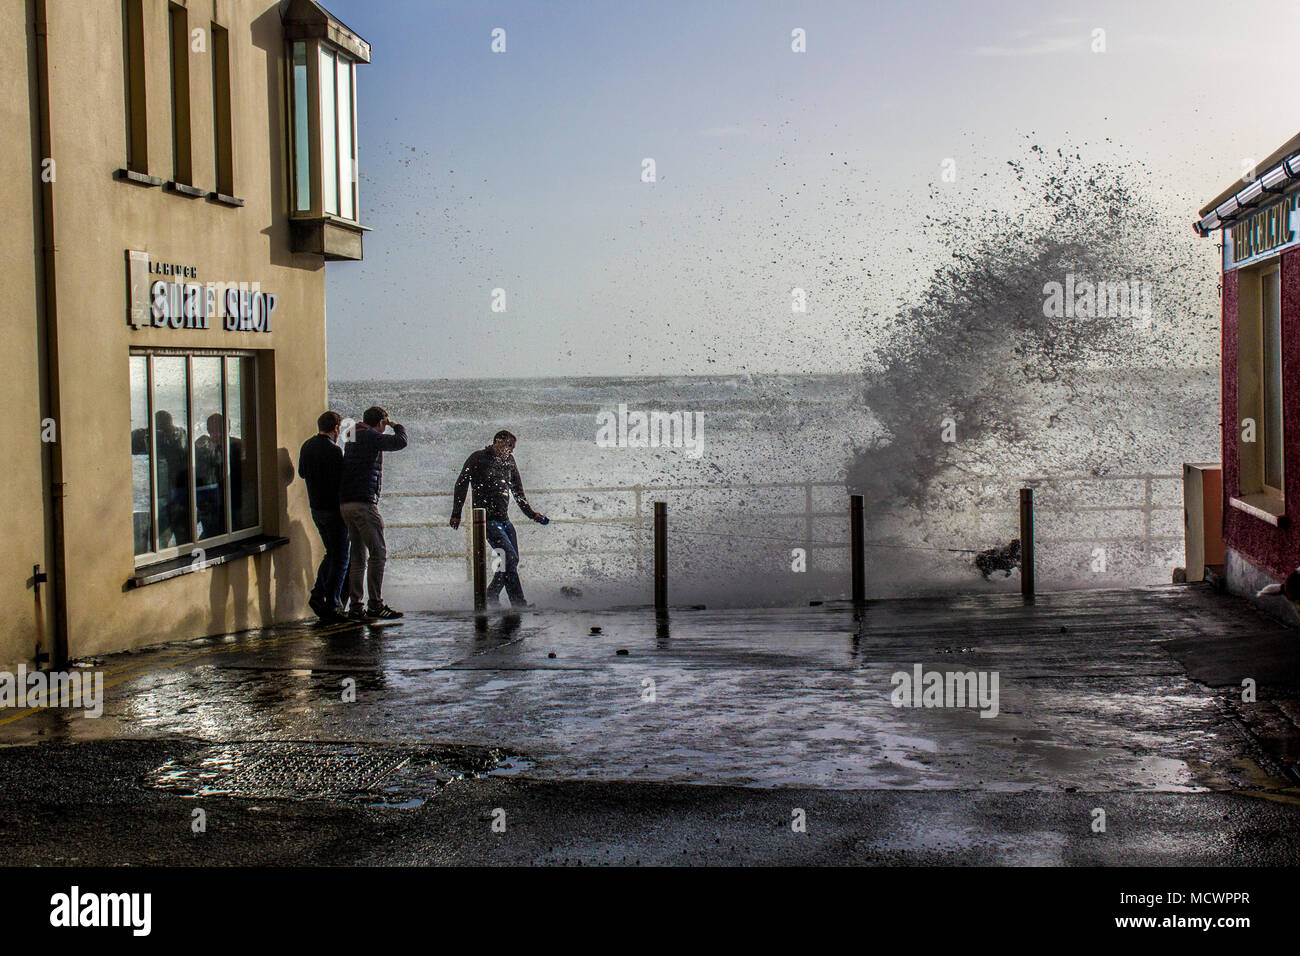 Man walking dog get hit by wave on the promenade in Lahinch - Stock Image